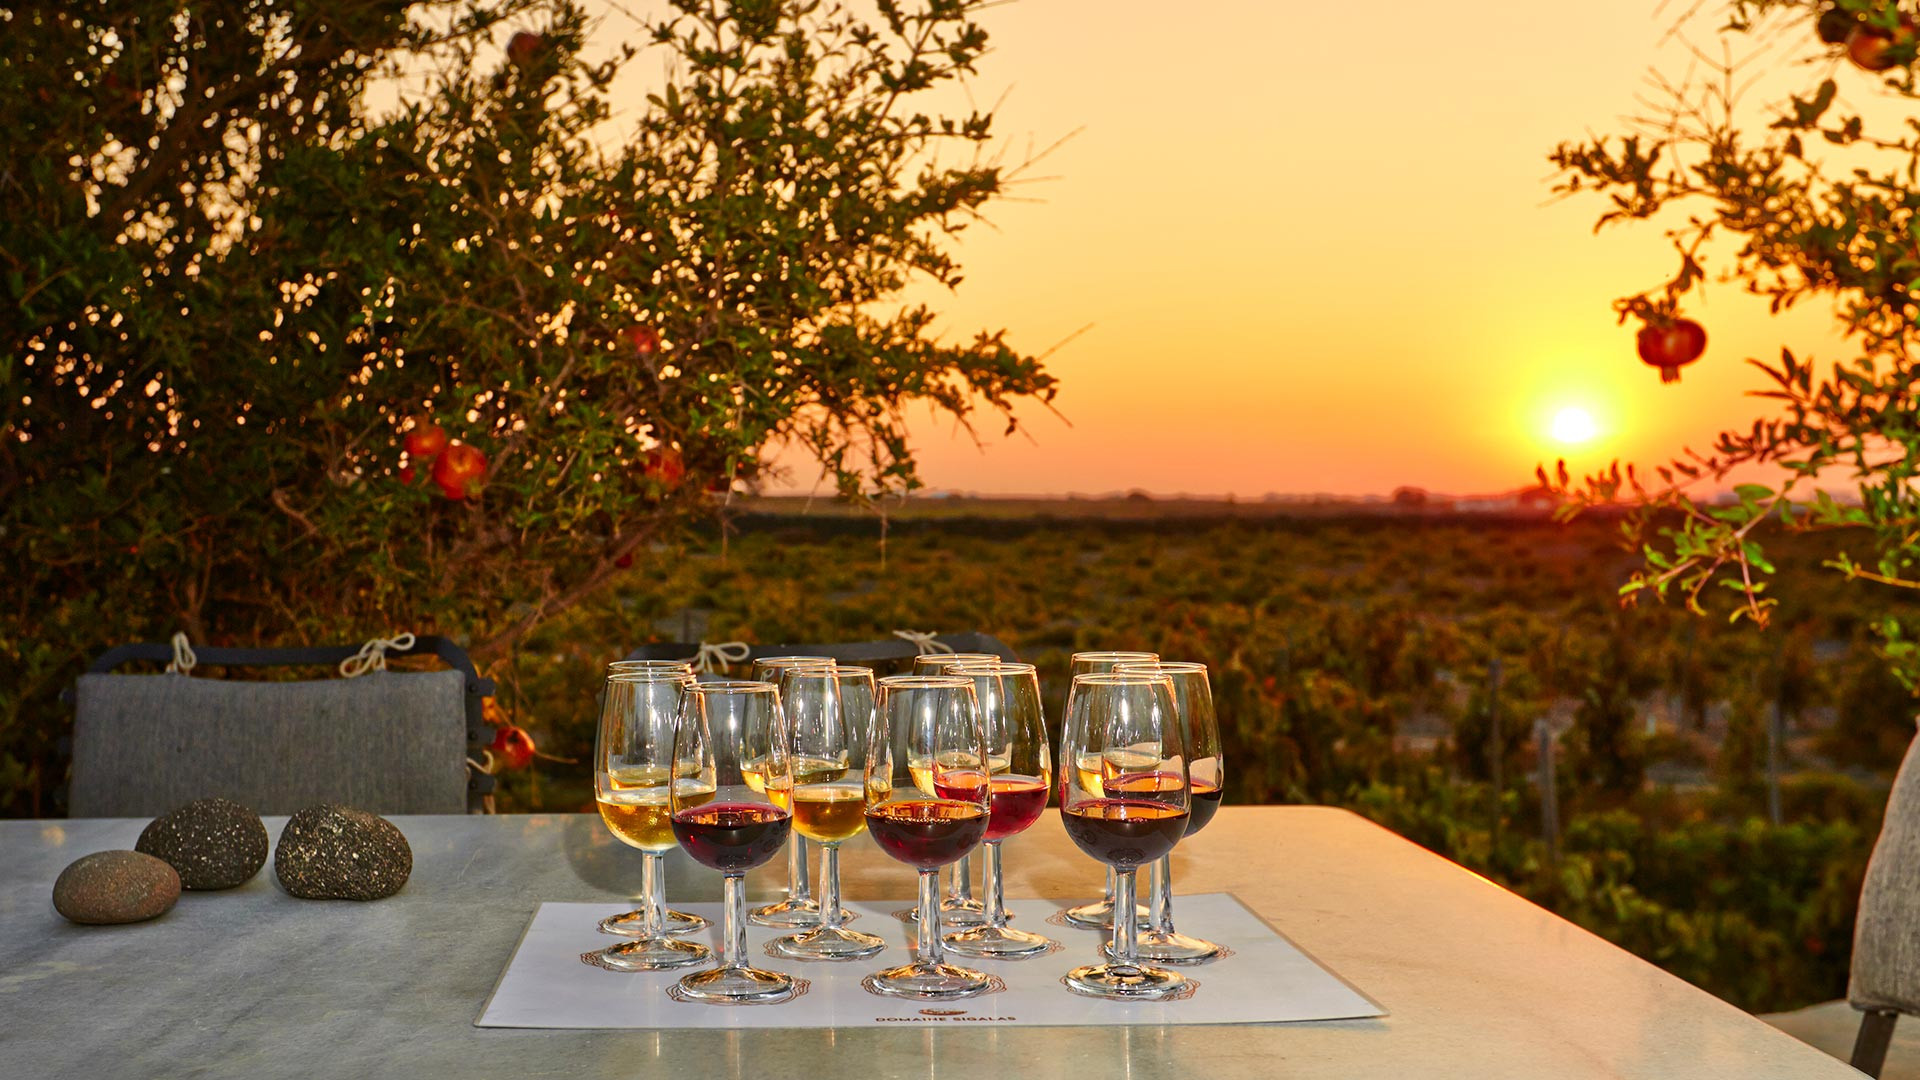 Glasses of volcanic wine on a table with the sun setting in the background over Santorini's vineyards